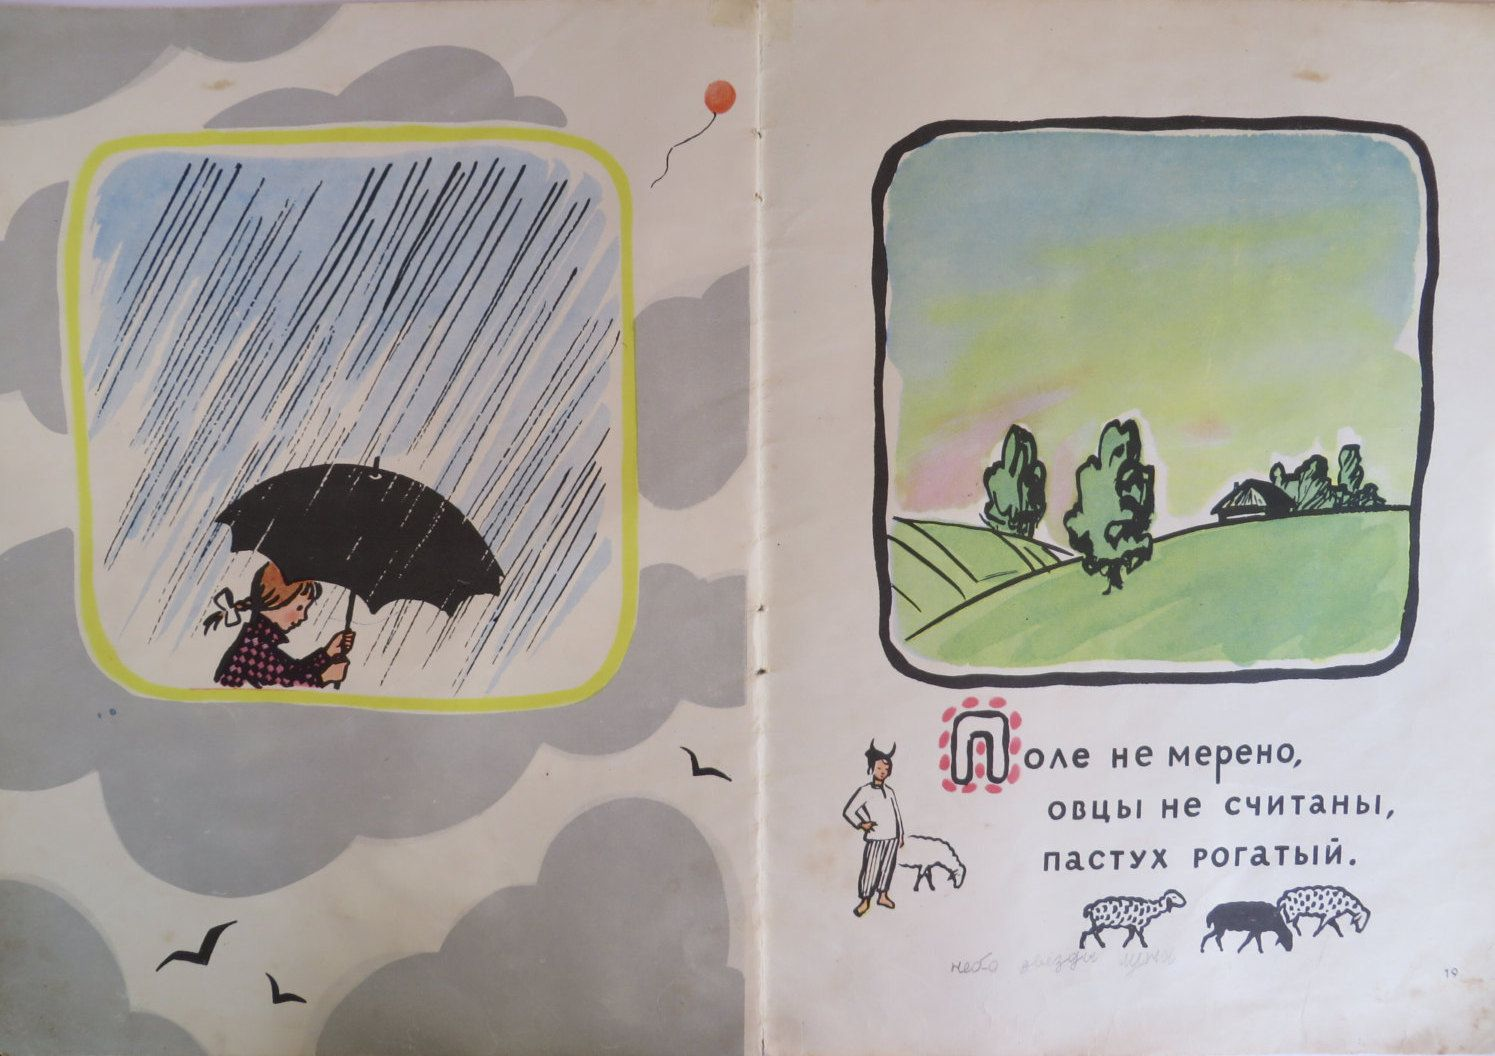 Who has the old Soviet childrens riddles, which in the modern way sound clearly went